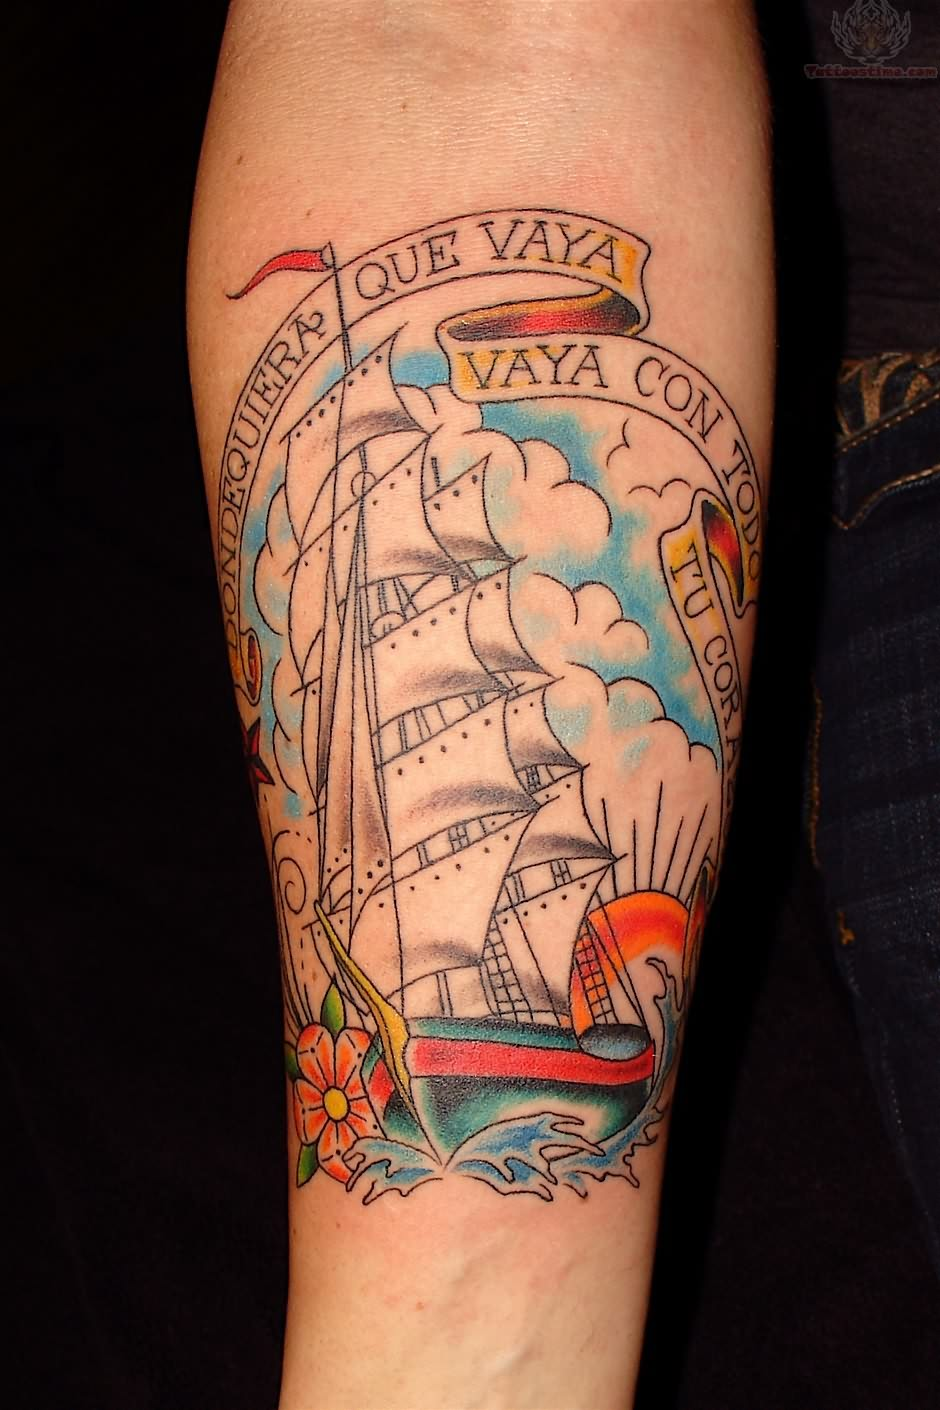 Joey Ship Tattoo On Arm